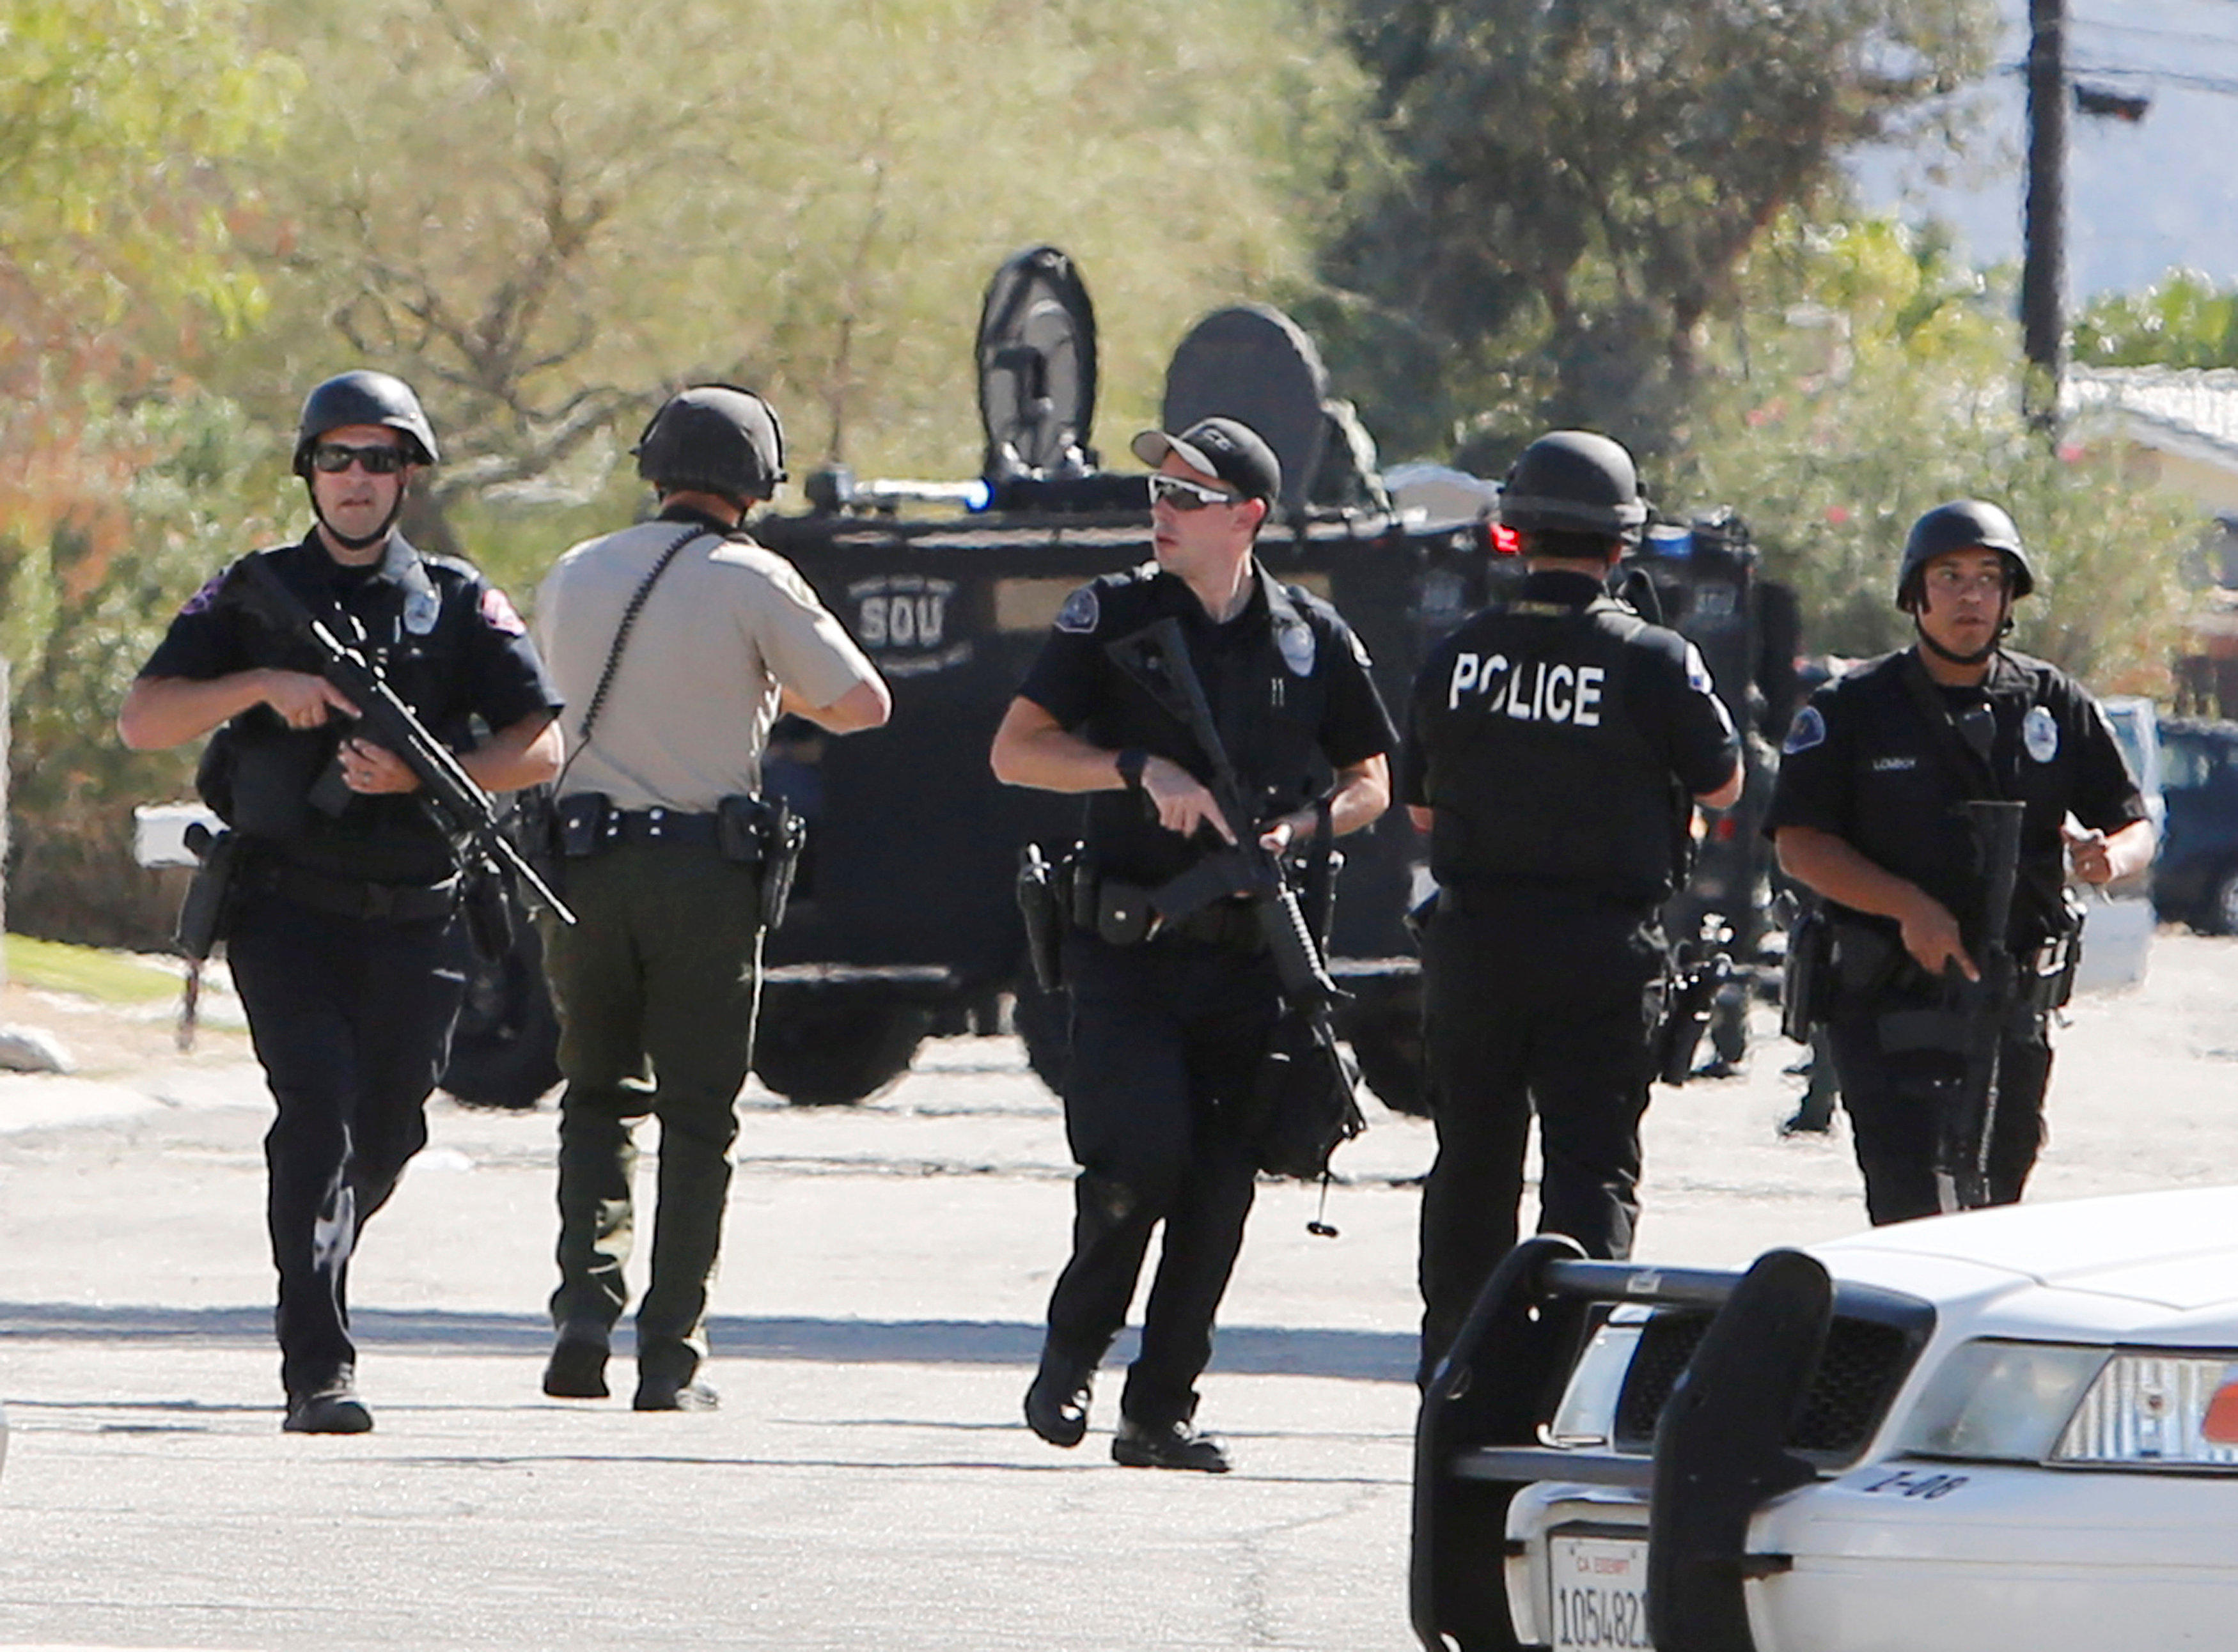 Alleged cop killer in palm springs california arrested cbs news - Police officer in california ...